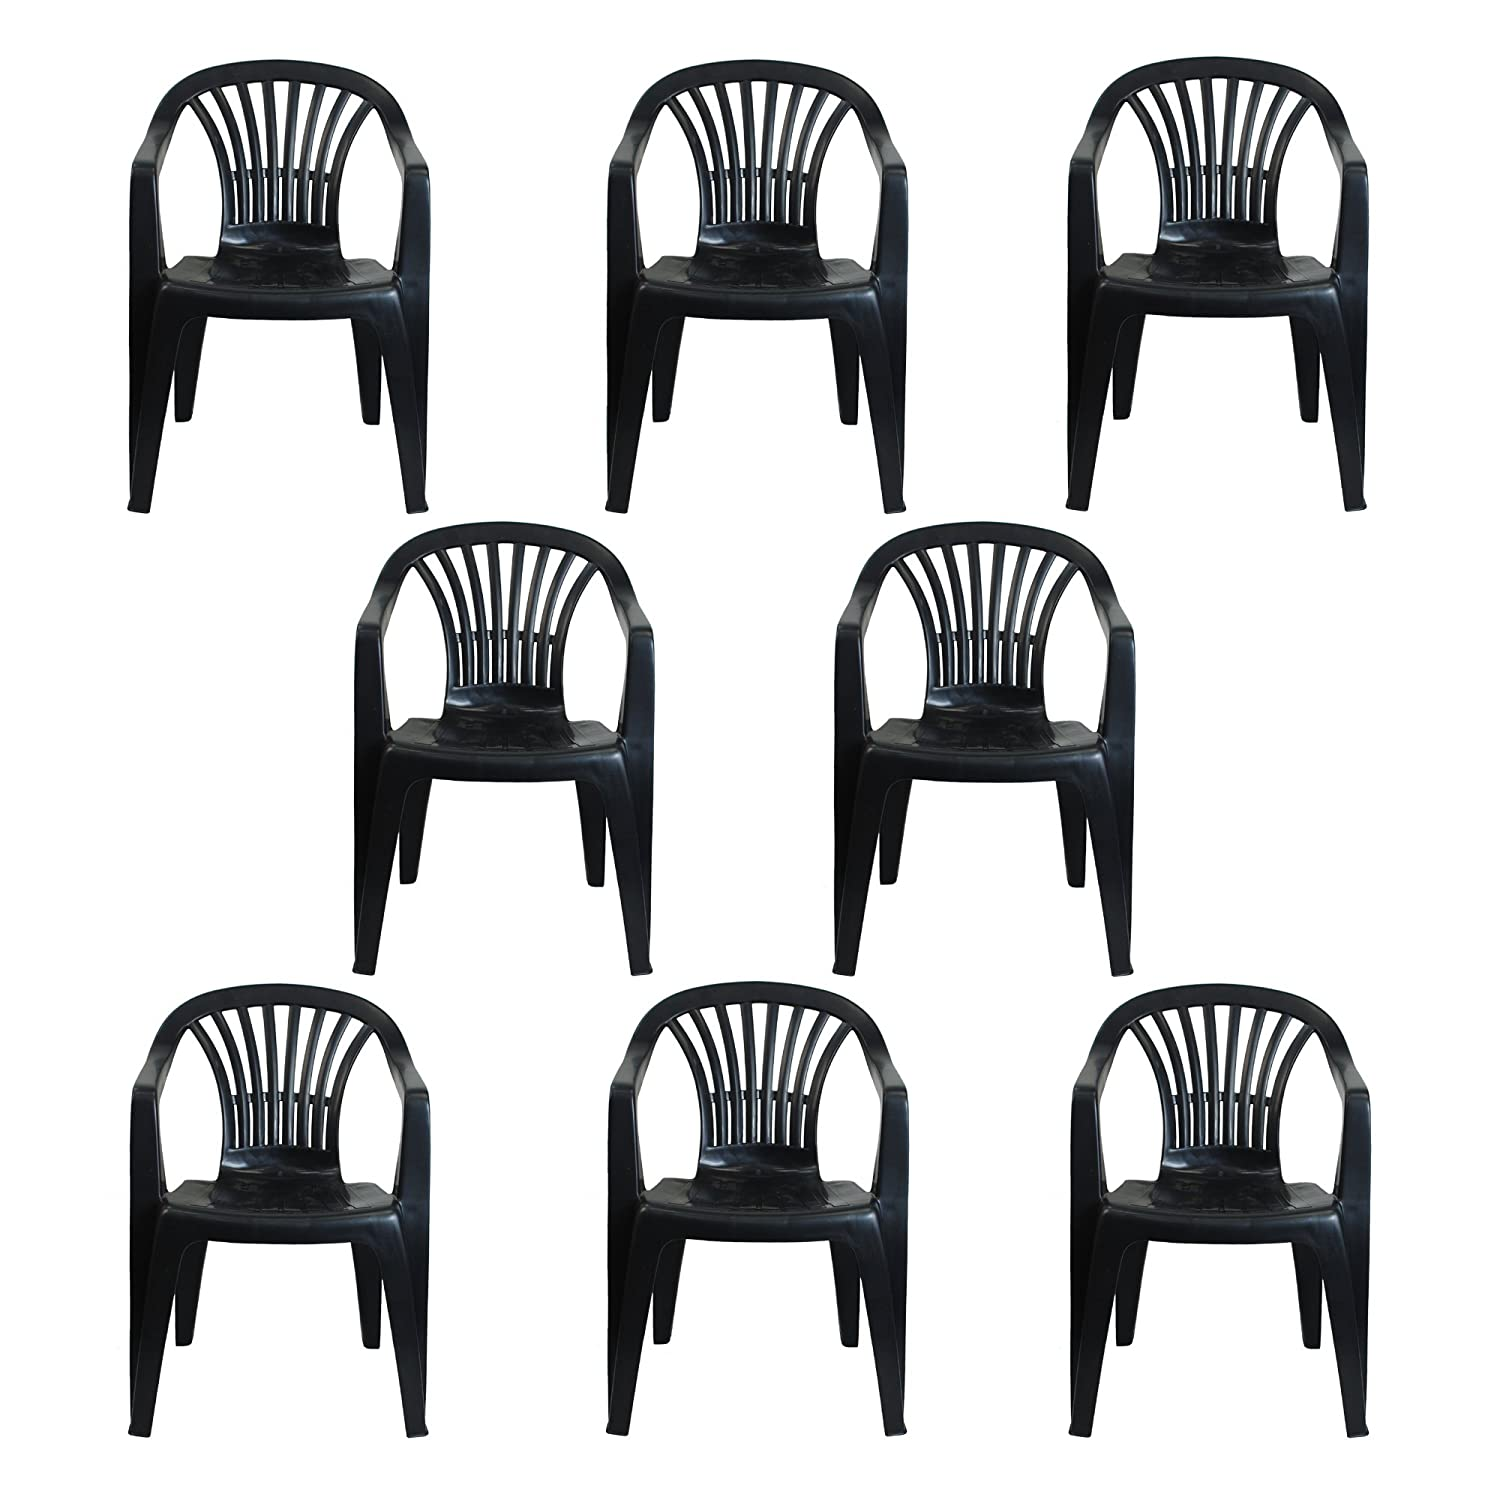 CrazyGadget Plastic Garden Low Back Chair Stackable Patio Outdoor Party Seat Chairs Picnic Grey Pack of 8 Simpa